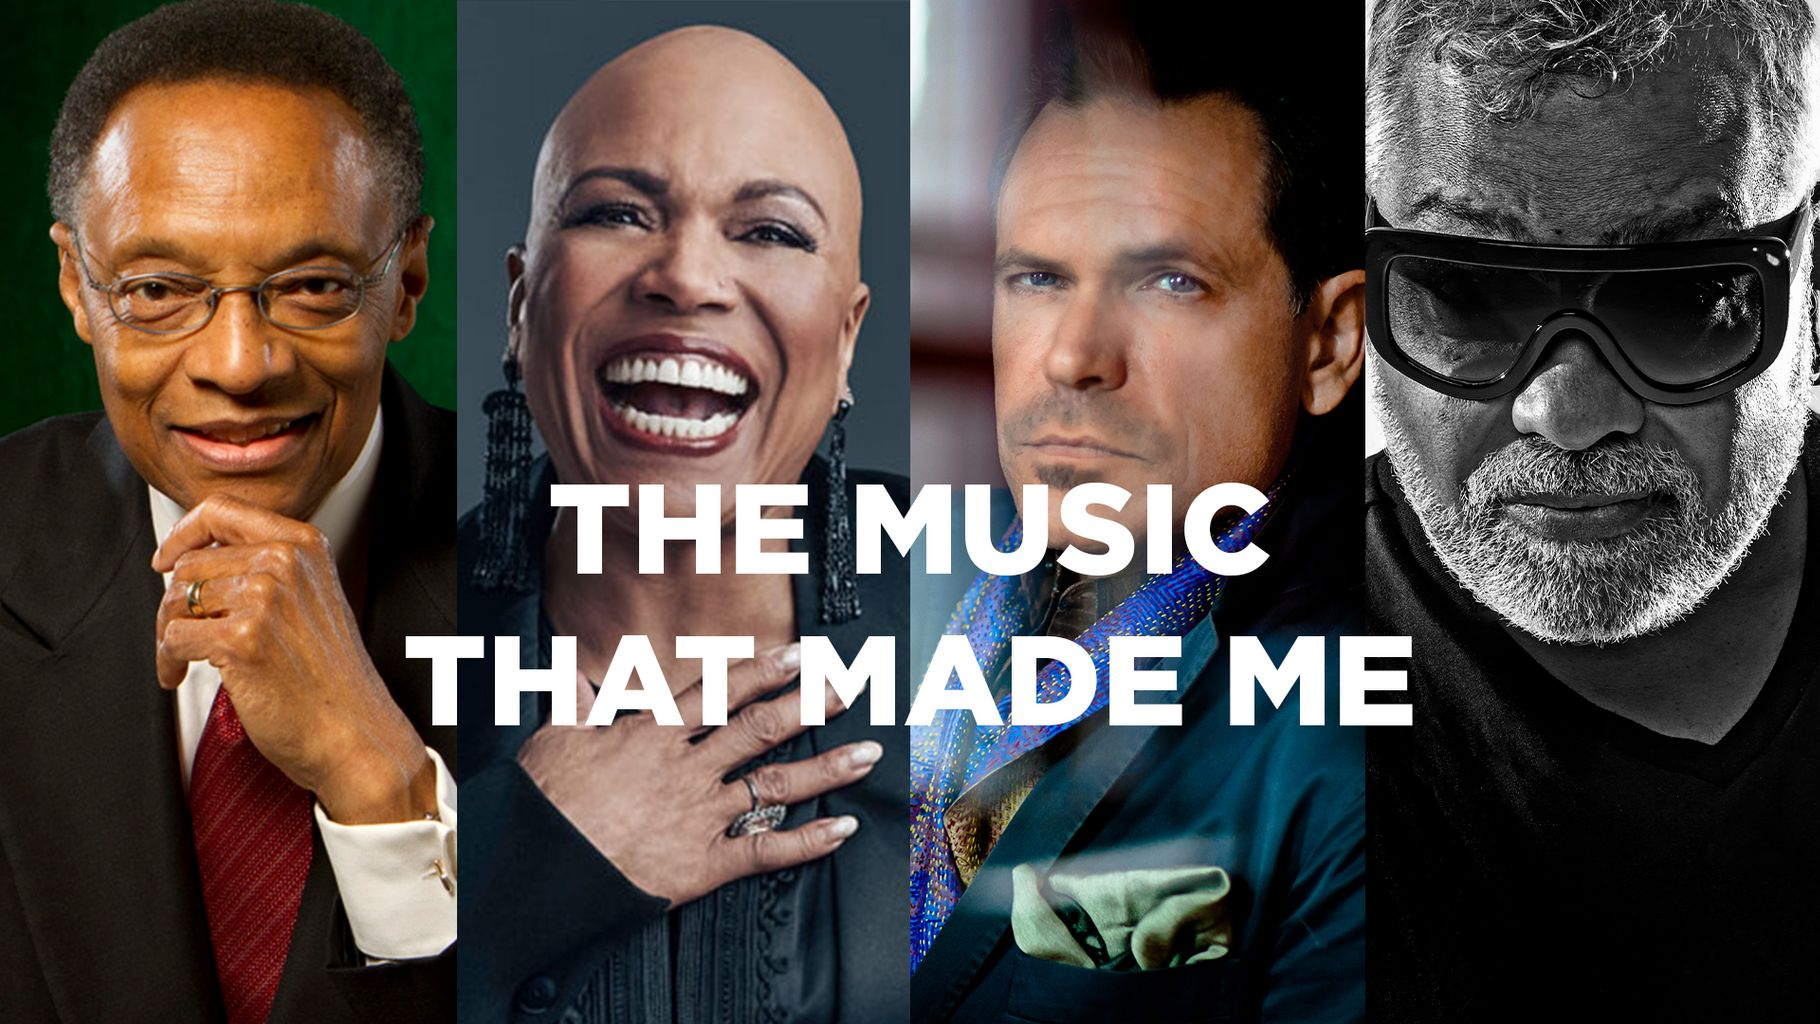 Presenting: The Music That Made Me